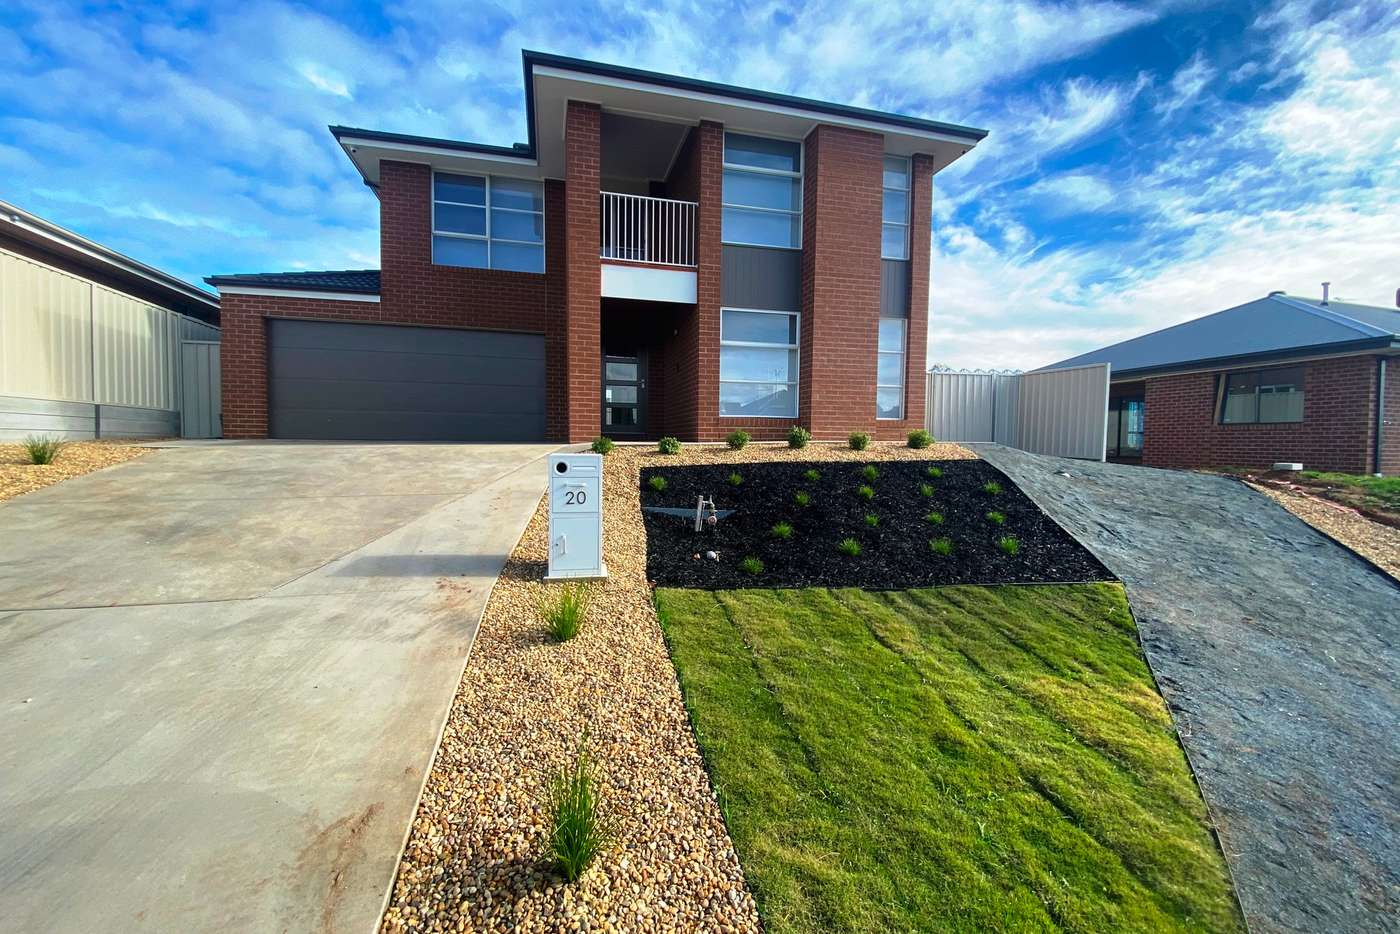 Main view of Homely house listing, 20 Chandler Street, Wodonga VIC 3690